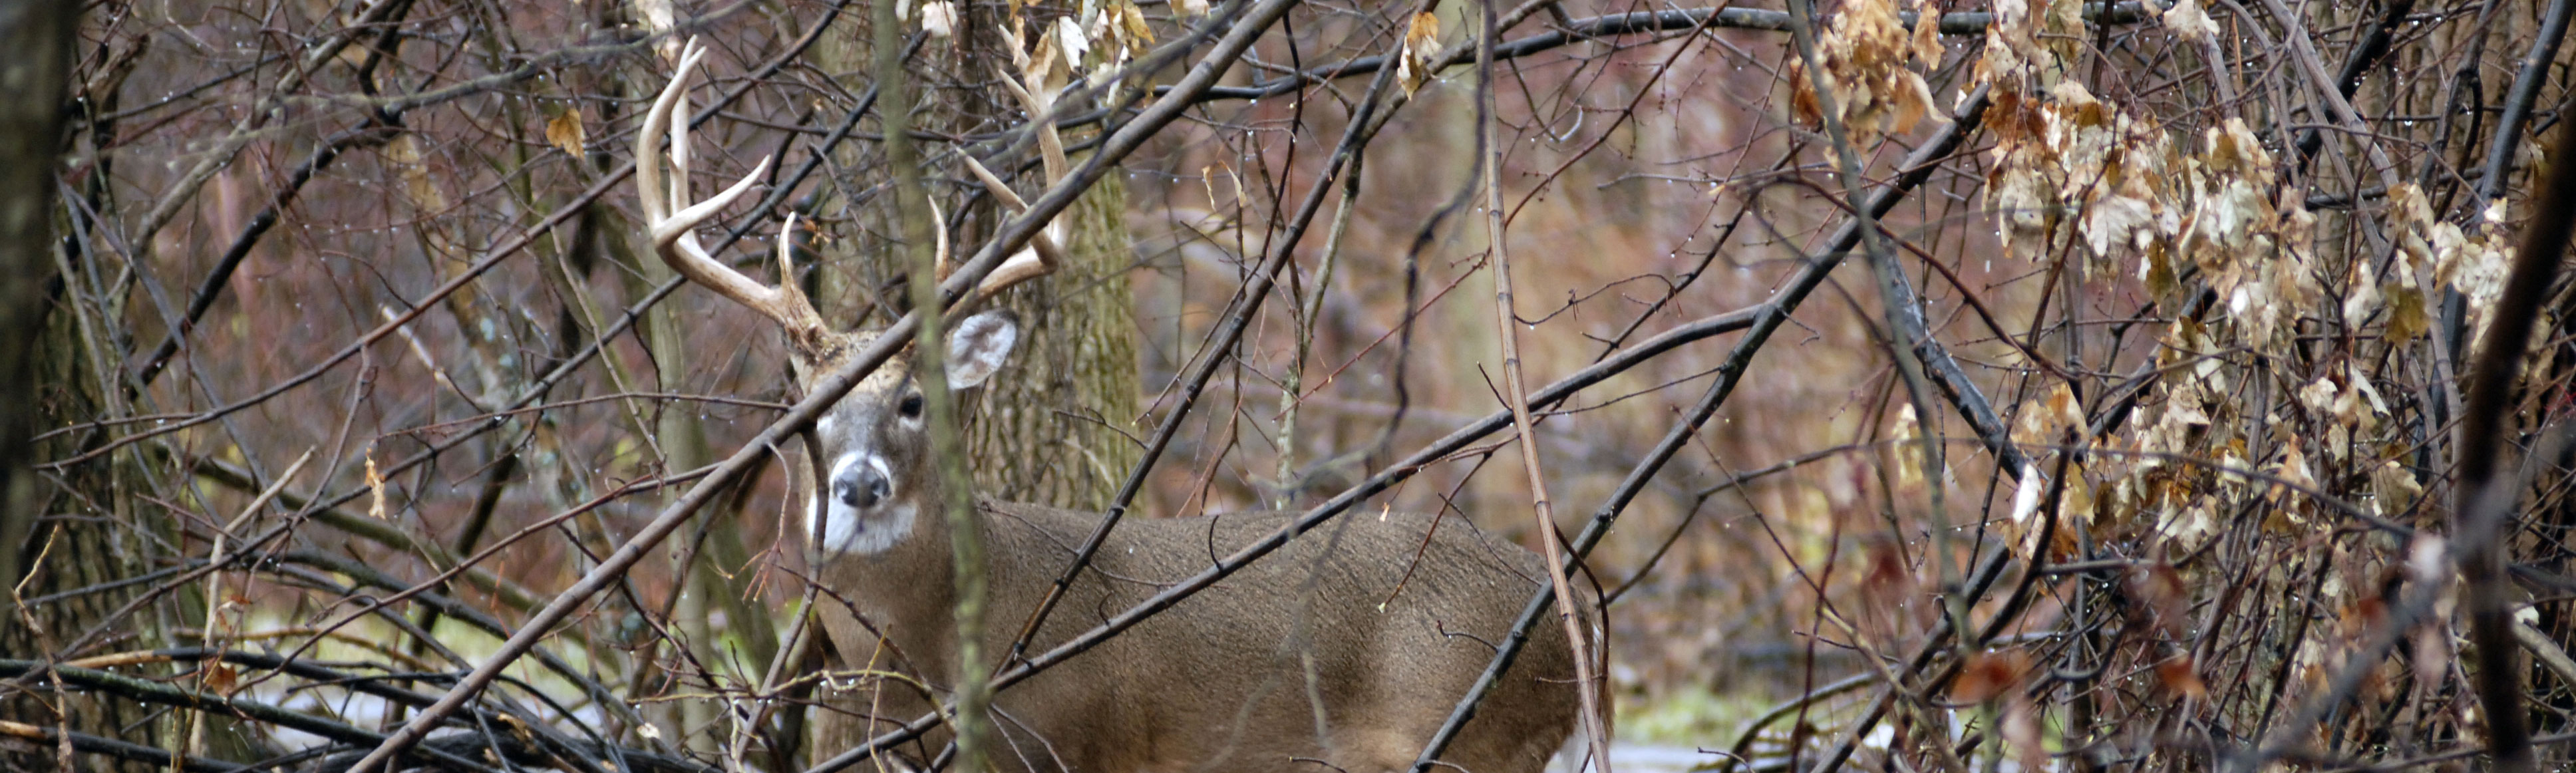 Hunting in New York | Find Info, Resources & Guides